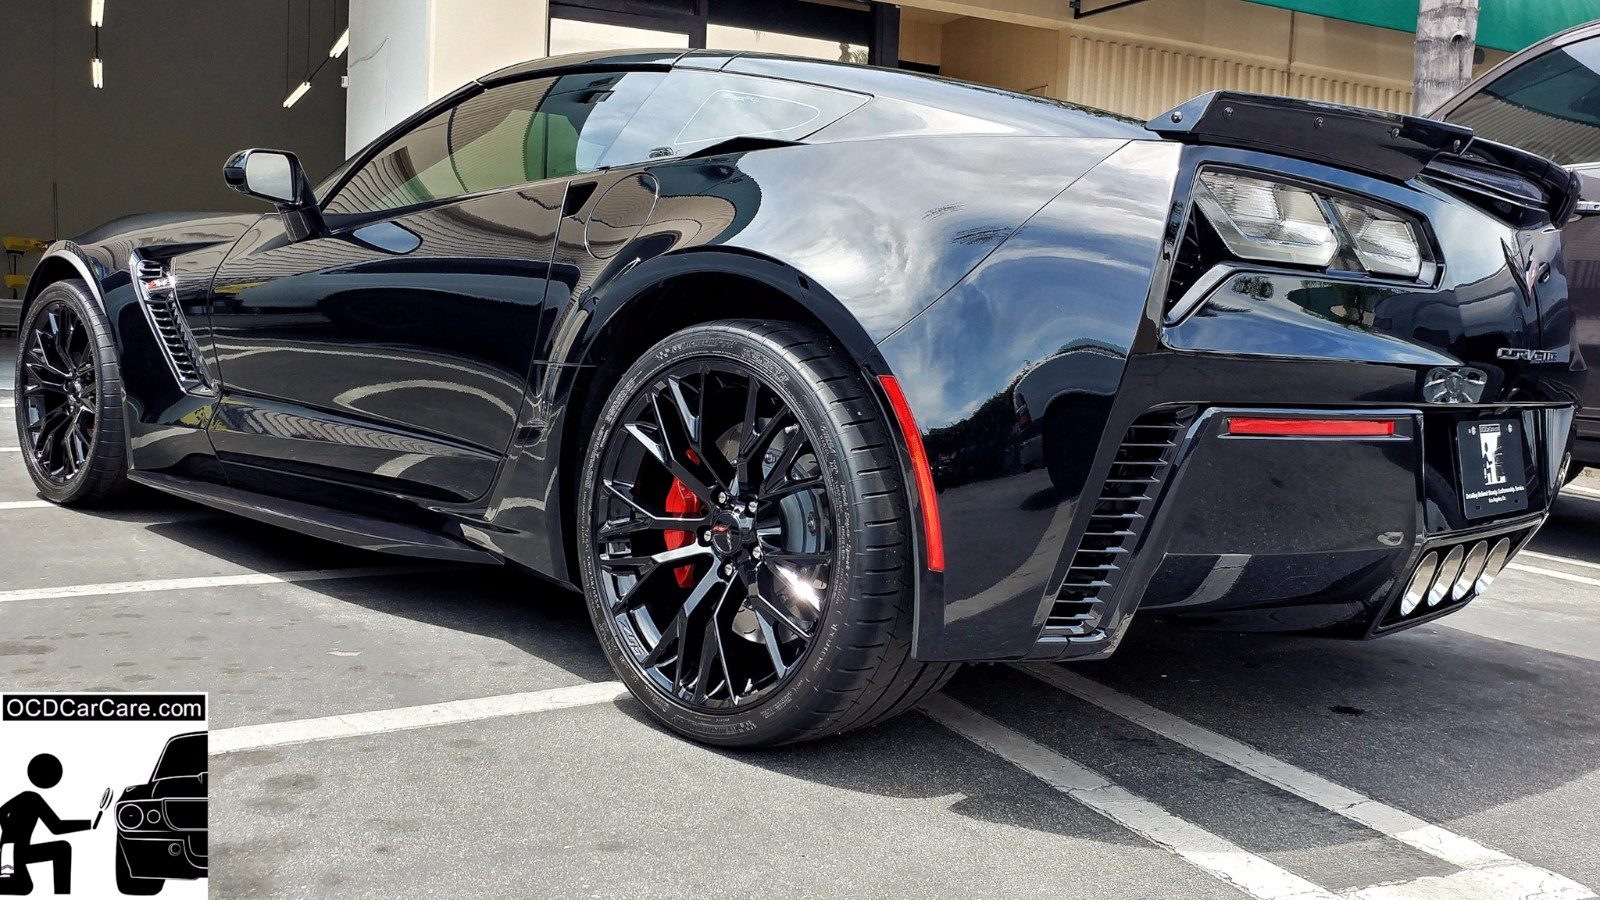 Corvette Z06 and reflections for days due to Los Angeles best paint correction specialist and pro ceramic nano coating installer, OCDCarCare.